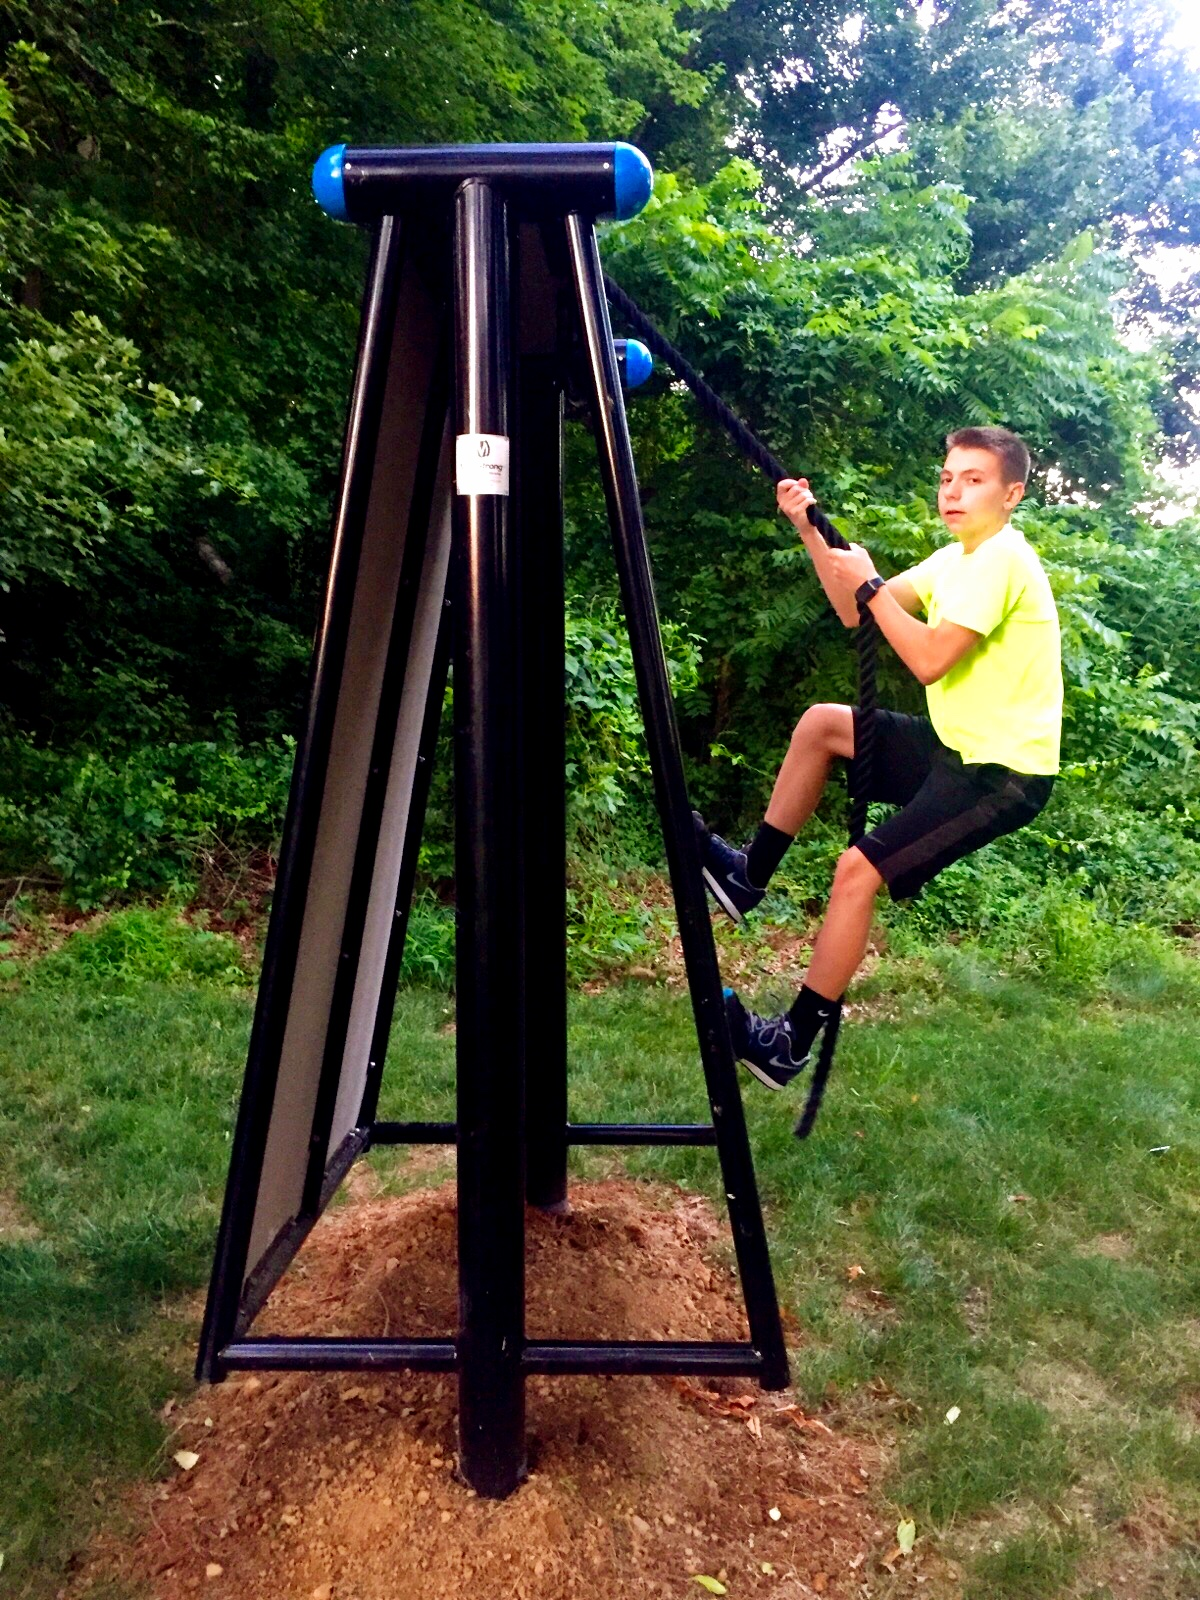 Outdoor fitness equipment Climb Obstacle